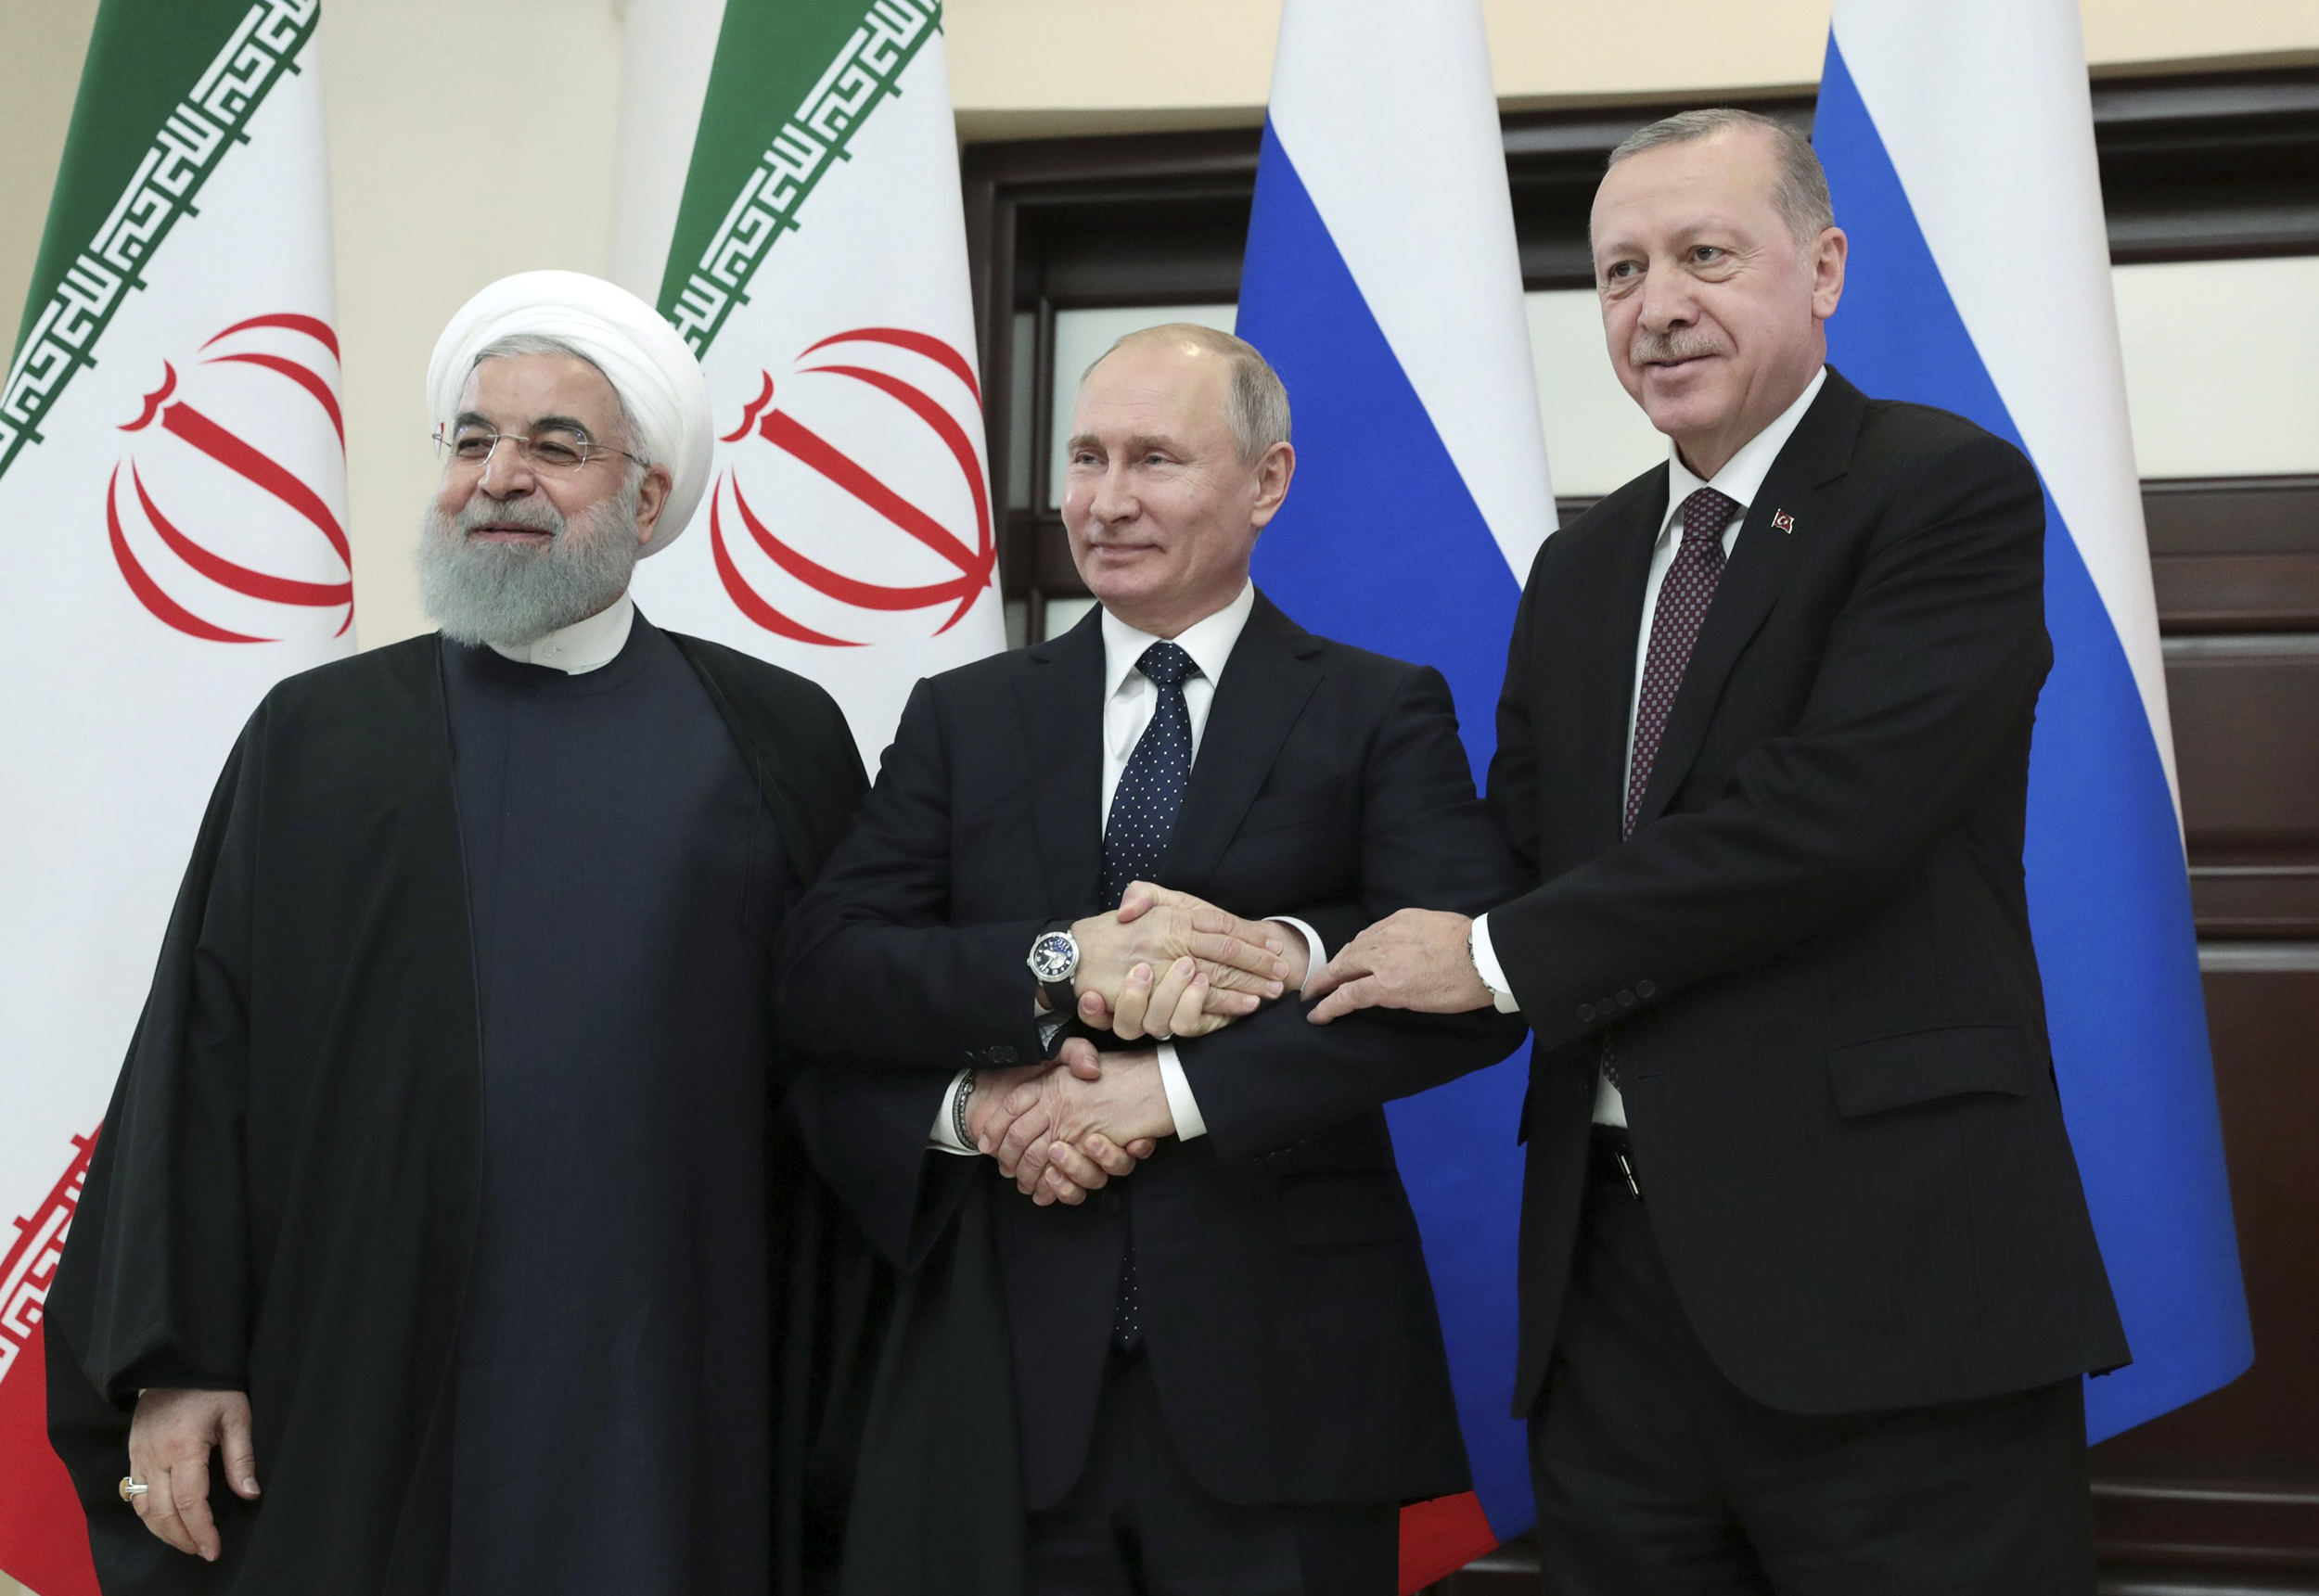 U S Ally Turkey Looks To Russia And Iran To Protect Its Interests